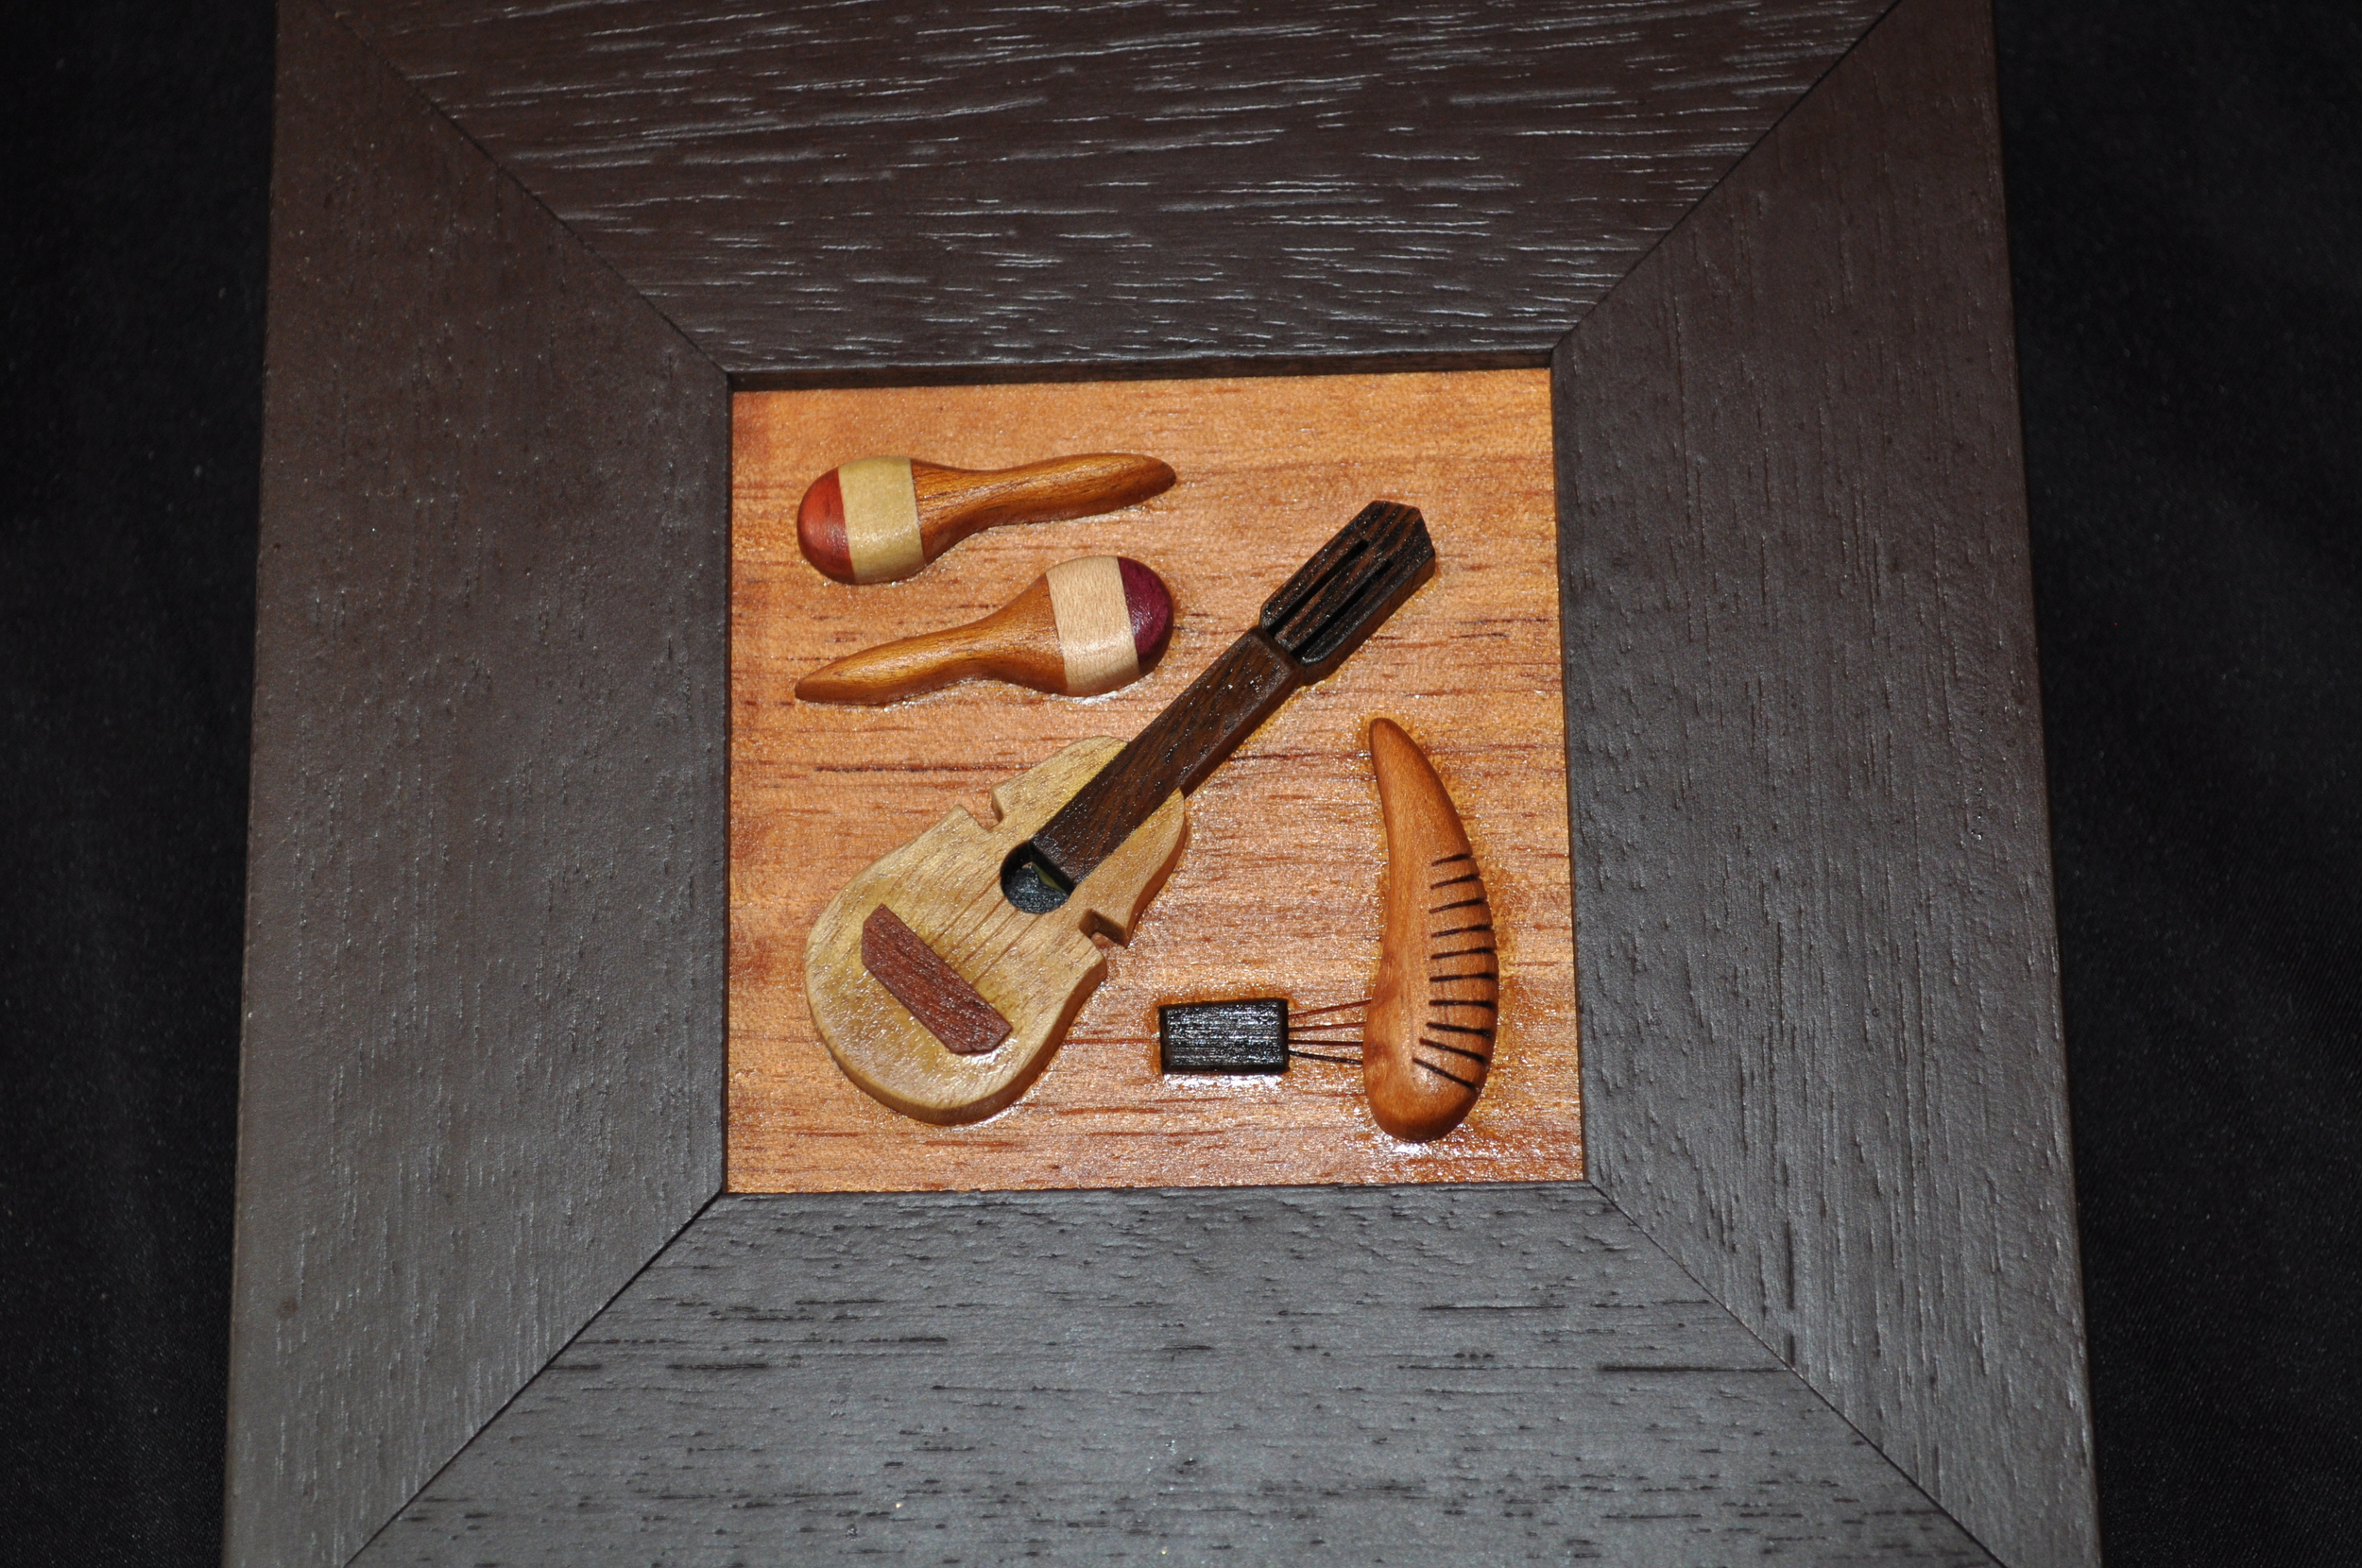 Puerto Rican musical instruments made with the intarsia technique. Photo: Pamy Rojas